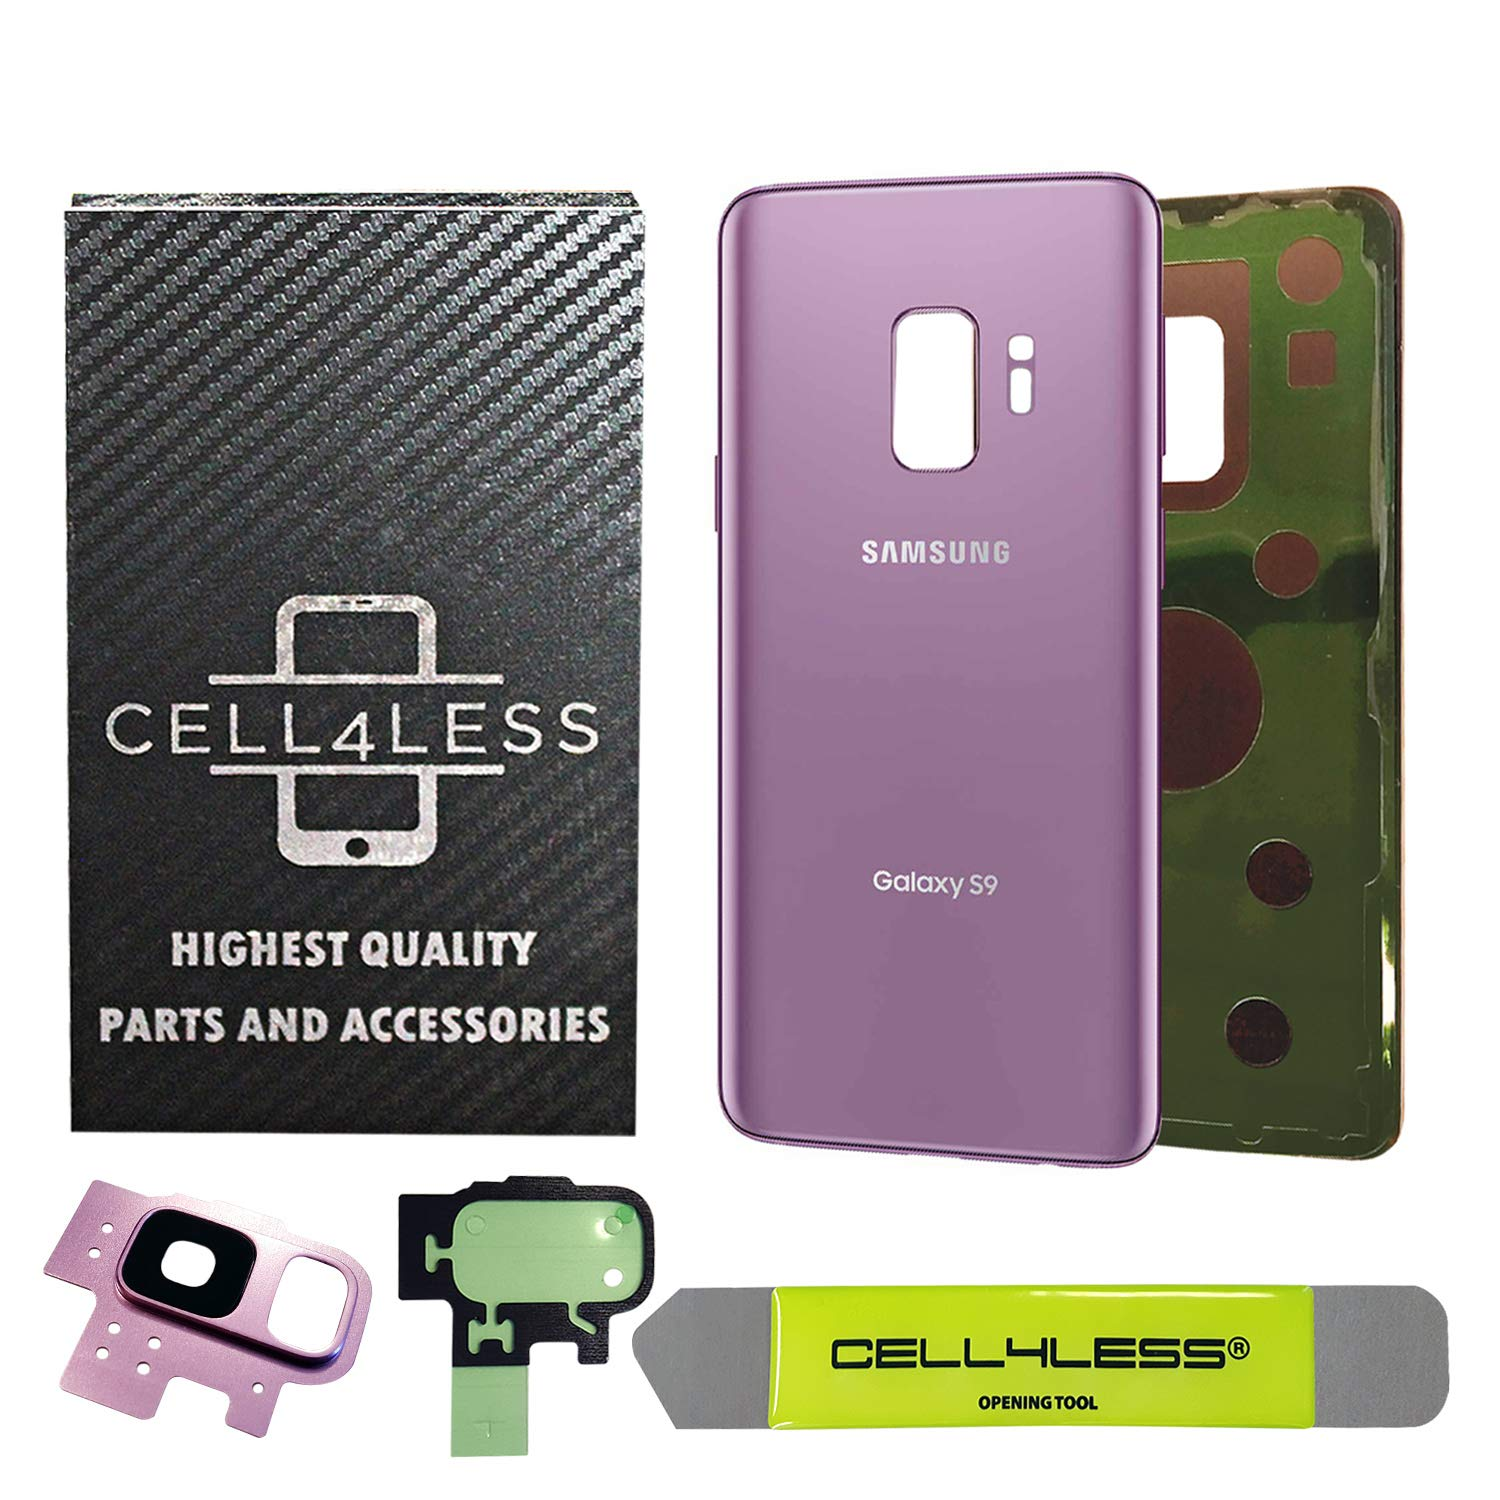 CELL4LESS Compatible Back Glass Cover Back Battery Door w/Pre-Installed Adhesive - Removal Tool - Camera Lens for Samsung Galaxy S9 OEM - All Models G960 All Carriers- 2 Logo OEM Replacement (Purple) by Cell4Less